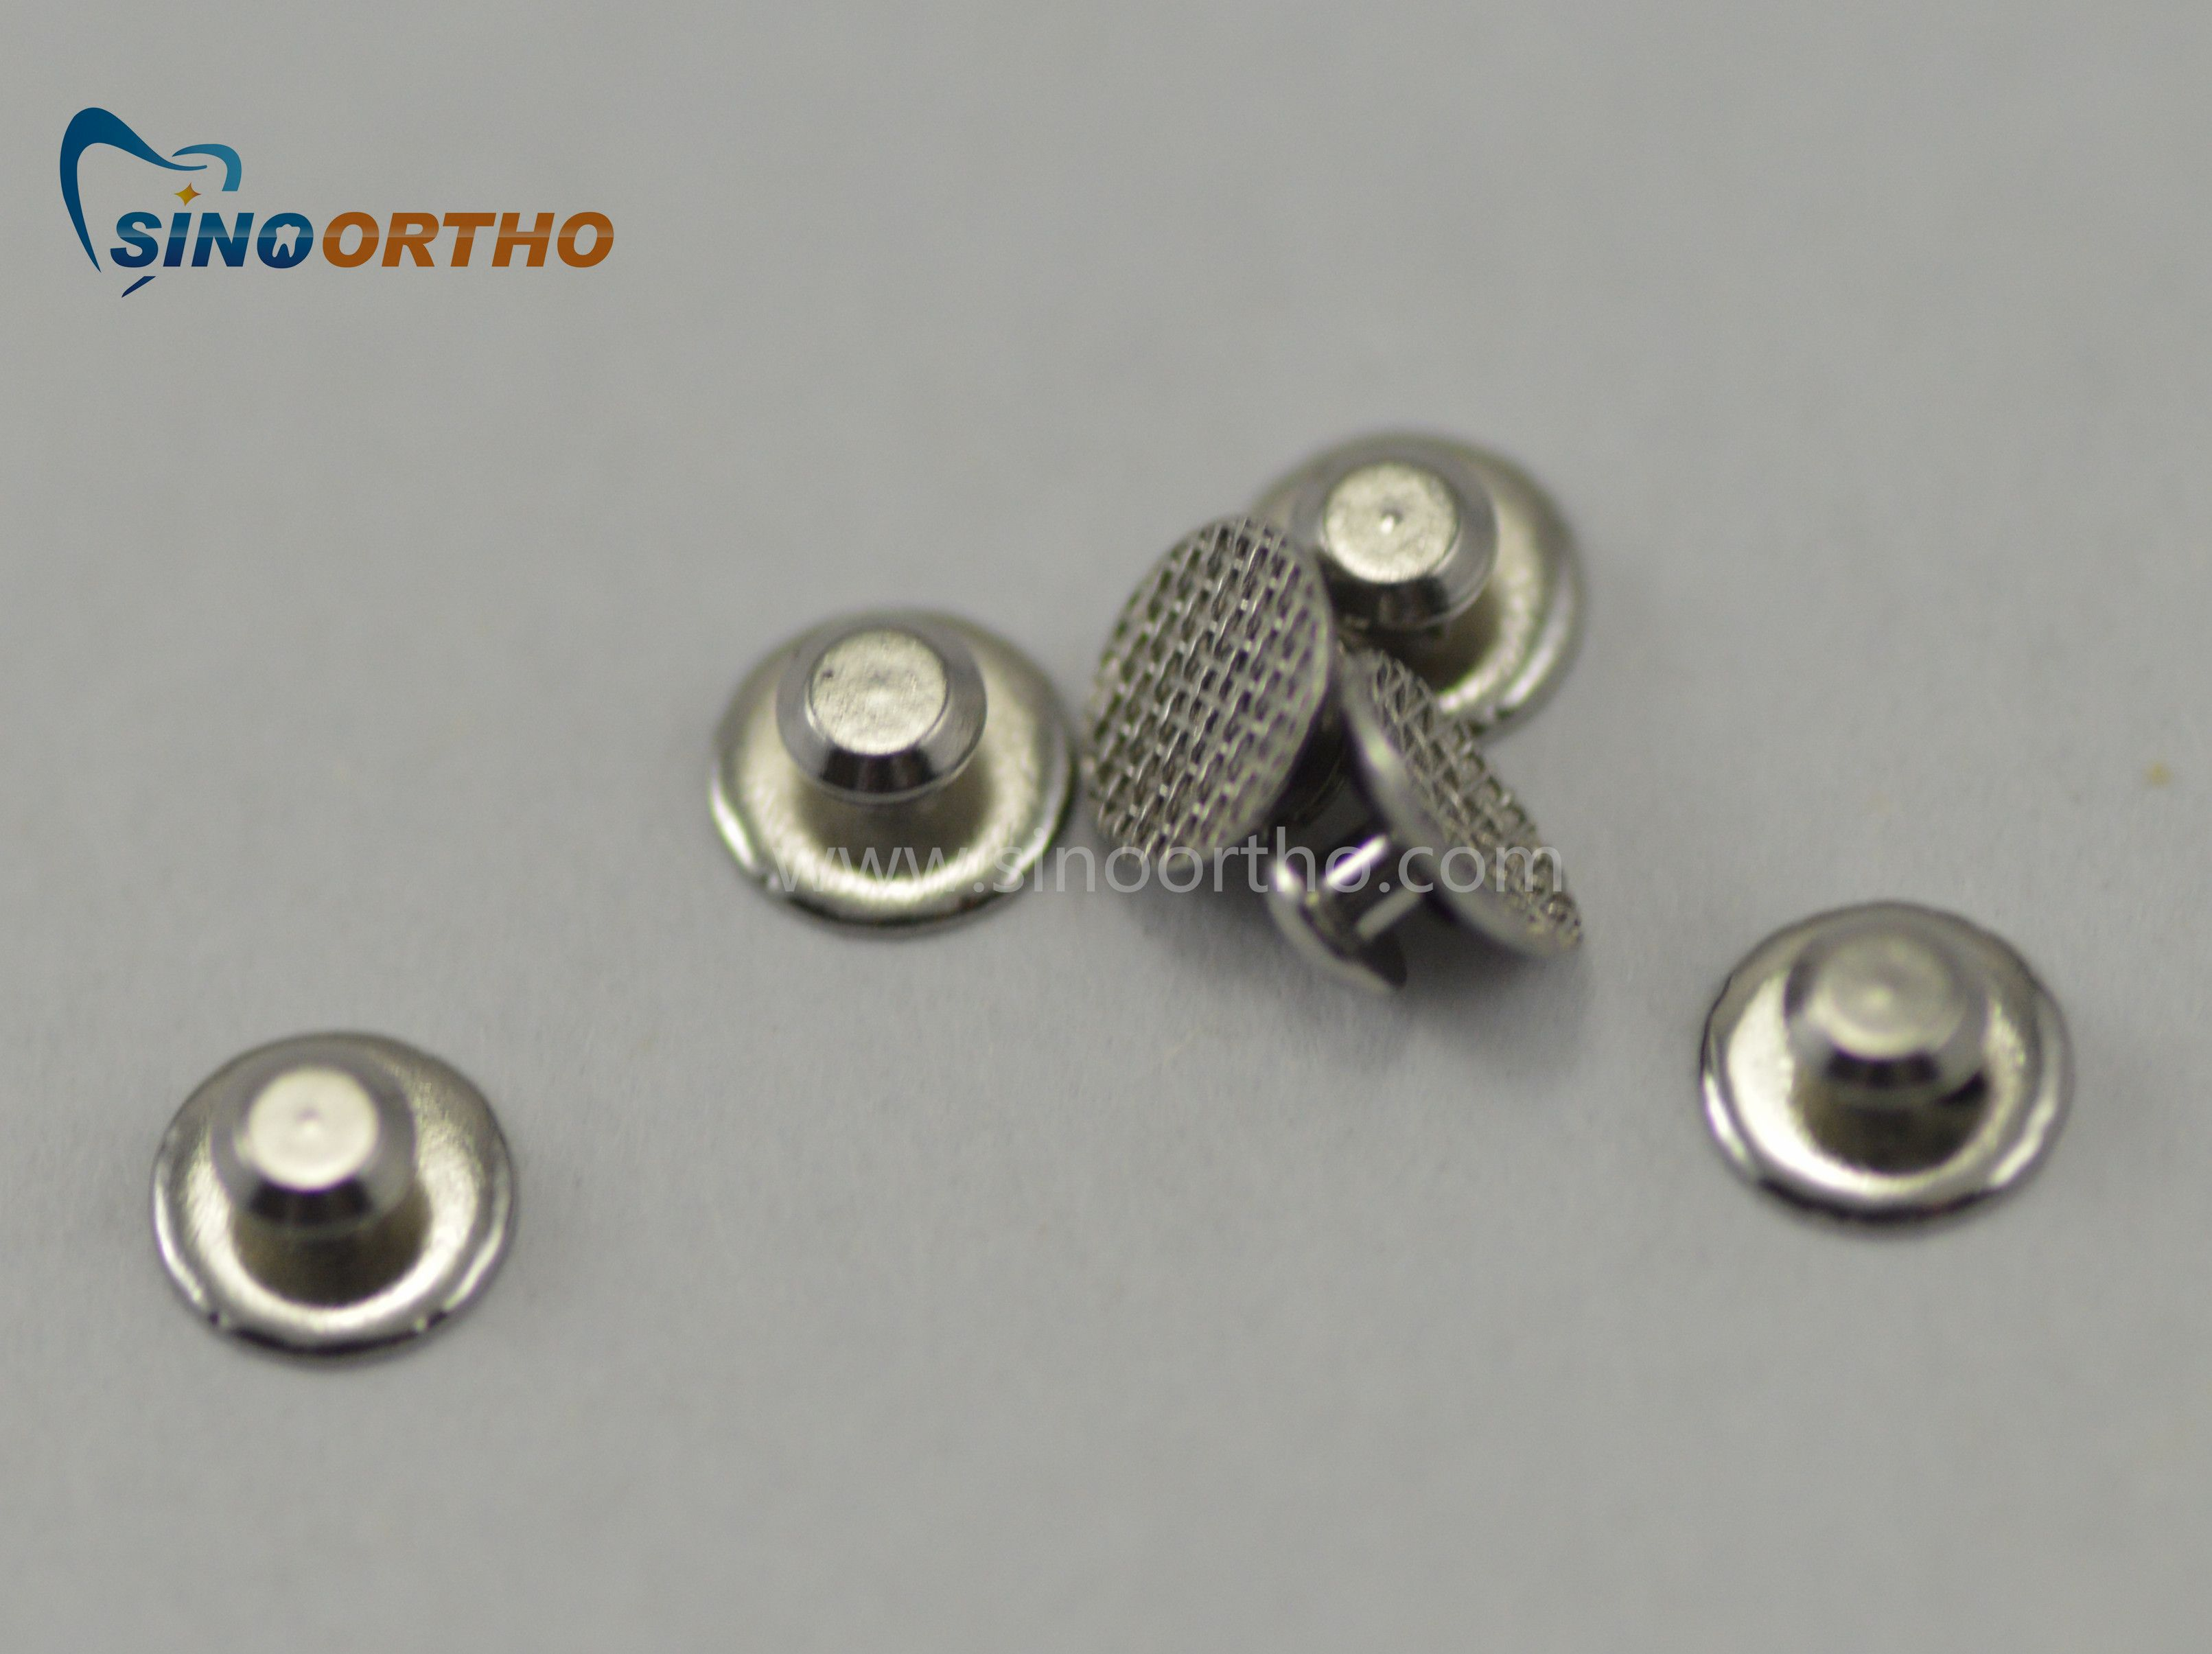 SINO ORTHO Lingual Button , Hot Sale Mesh Base , Bondable Have A Good  Bonding Ability , Good Quality , Door To Door Service , Get Your Products  At Home .